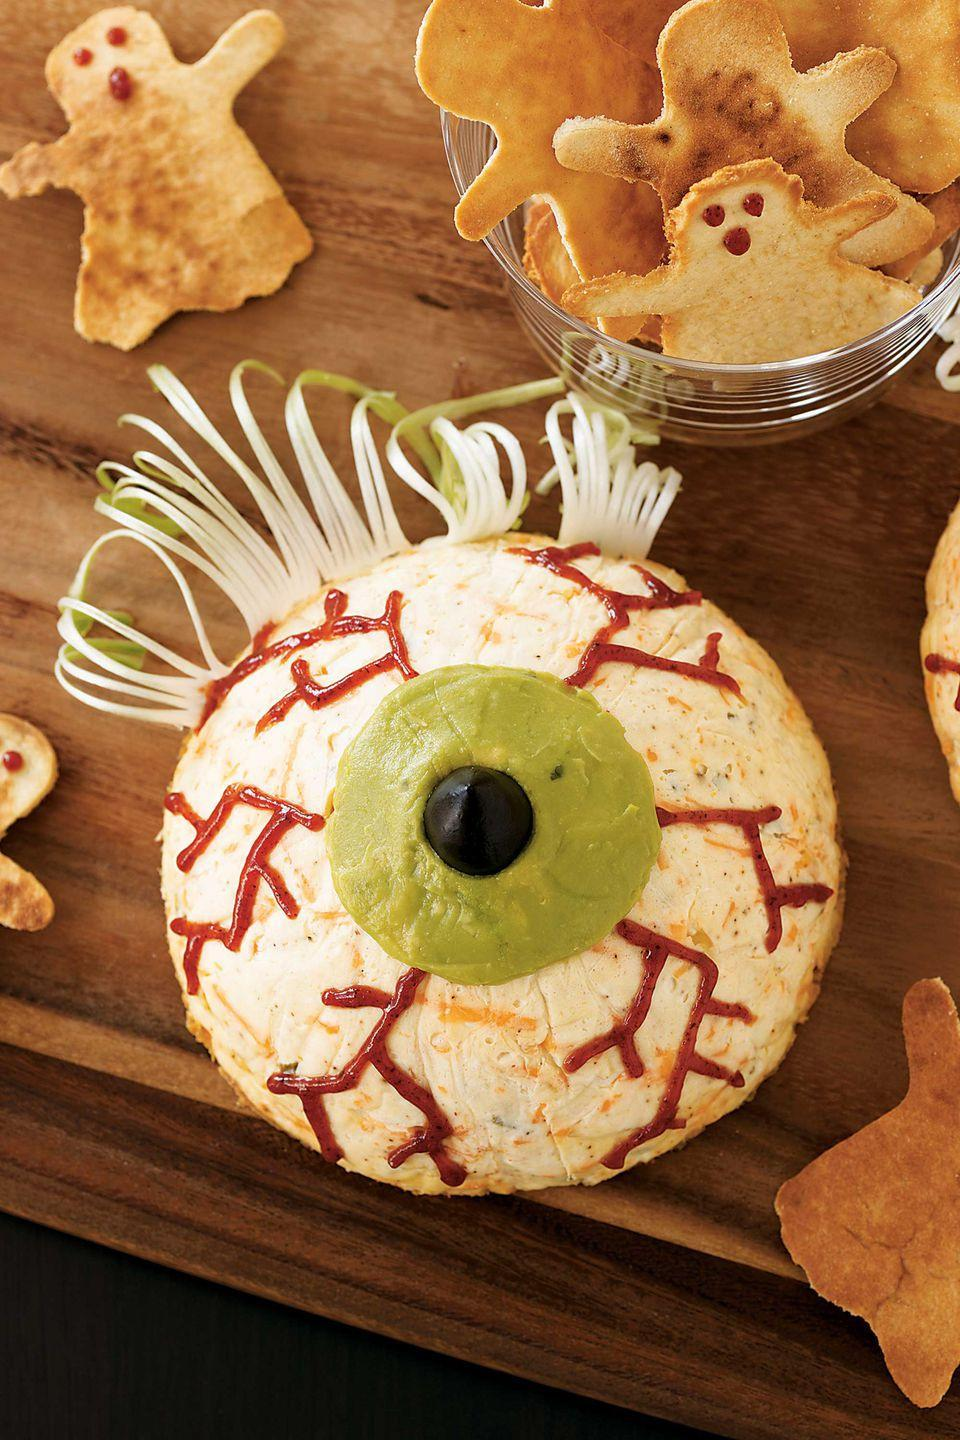 "<p>Your guests will get an eye-full of delicious when they dig in to this cheesy peeper. Scallion eyelashes and a guacamole iris upgrade the party favorite. </p><p><strong><a href=""https://www.womansday.com/food-recipes/food-drinks/recipes/a10878/eyeball-cheesecakes-recipe-122182/"" rel=""nofollow noopener"" target=""_blank"" data-ylk=""slk:Get the recipe."" class=""link rapid-noclick-resp"">Get the recipe.</a></strong></p>"